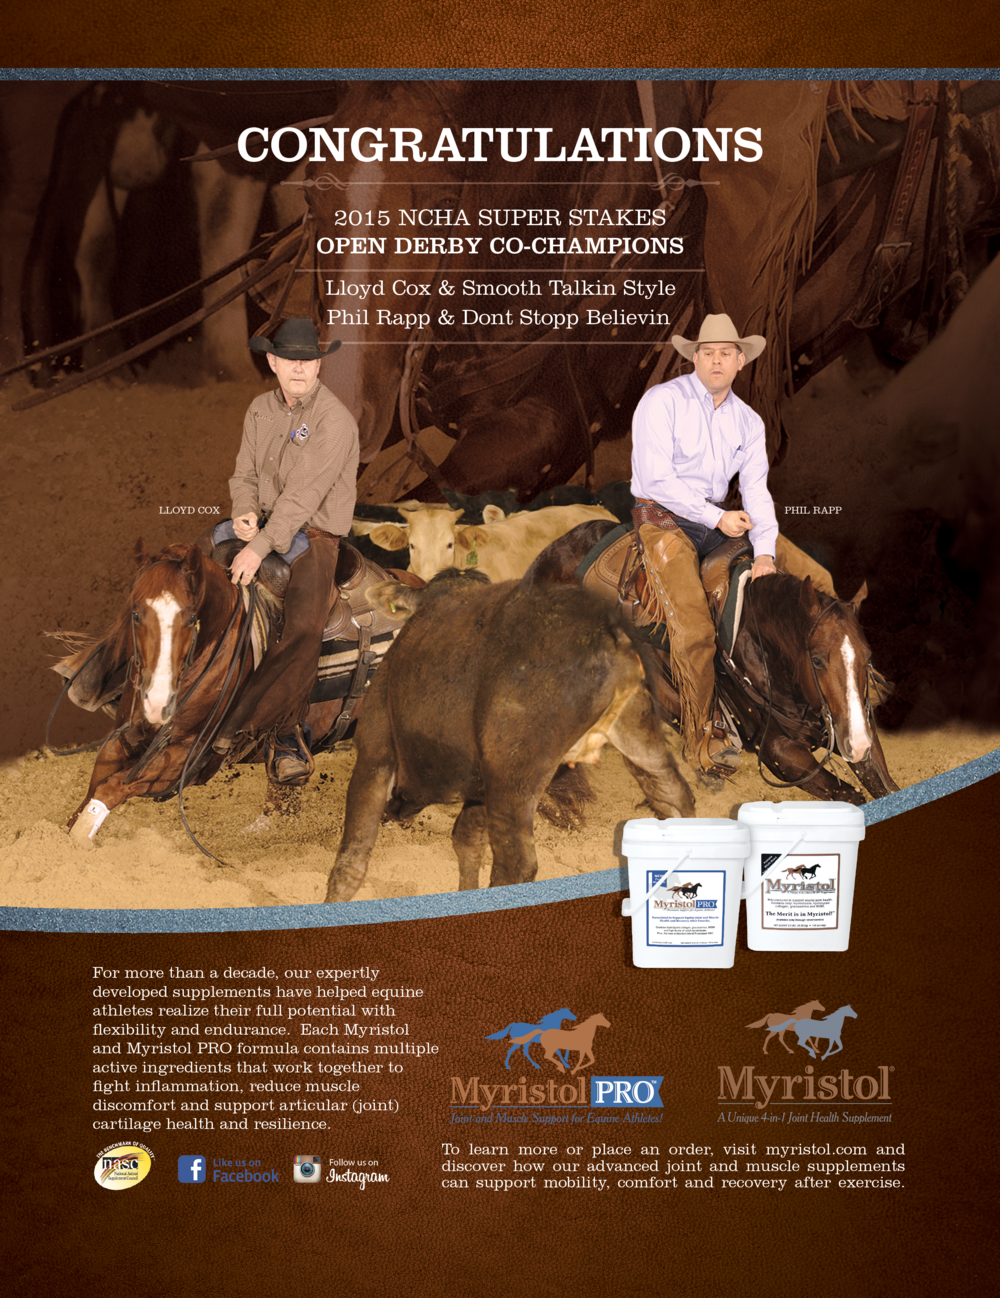 Myristol Cutting Horse Spotted Donkey Branding Ad